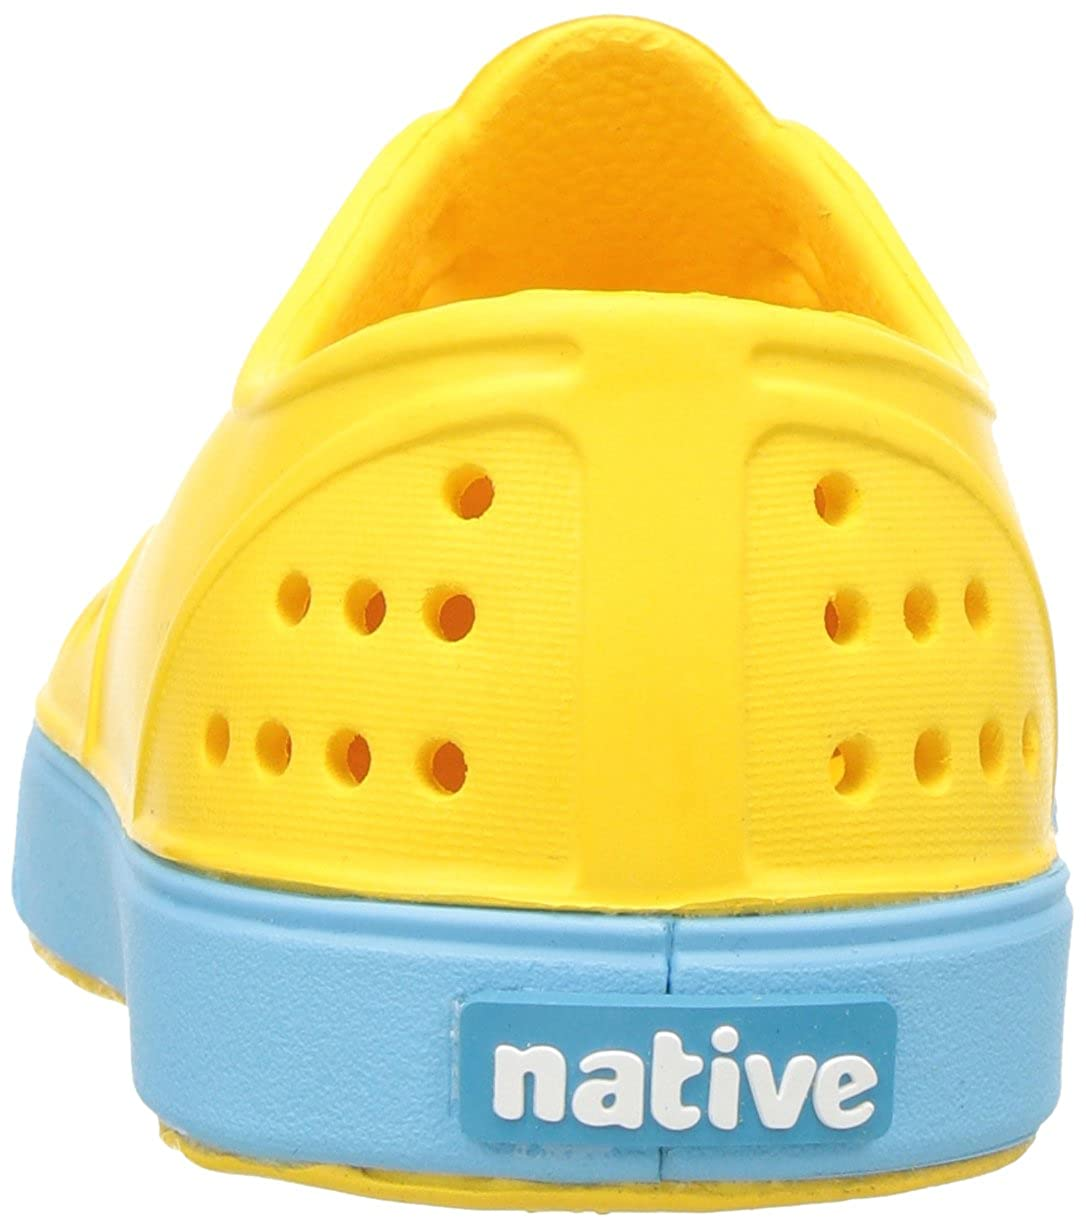 Native Kids/' Miller Water Proof Shoes Native Kids Shoes 1014620unisex-baby Native Kids Miller Water Proof Shoes